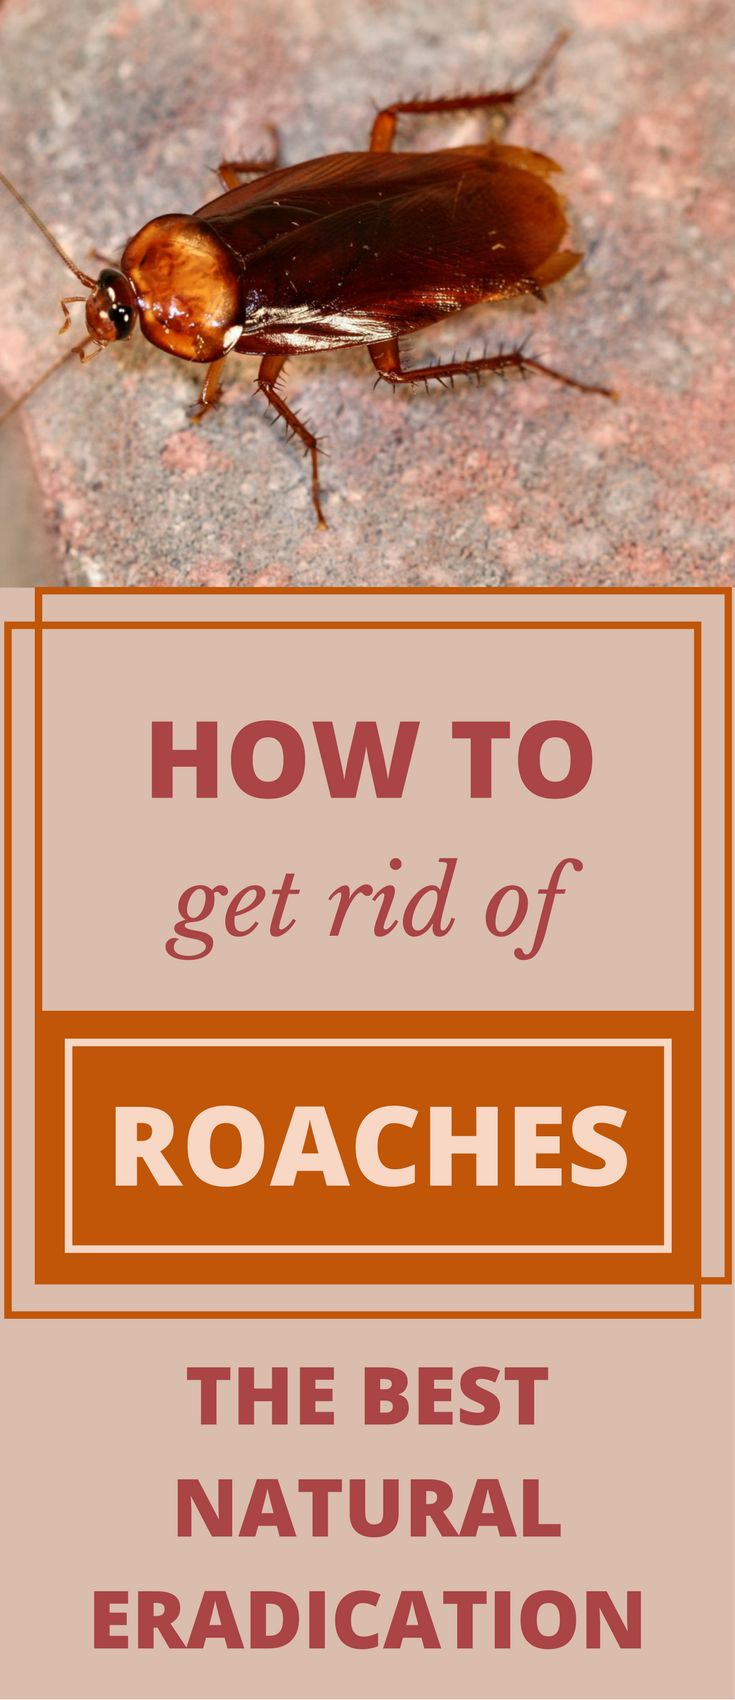 How To Get Rid Of Roaches - The Best Natural Eradication